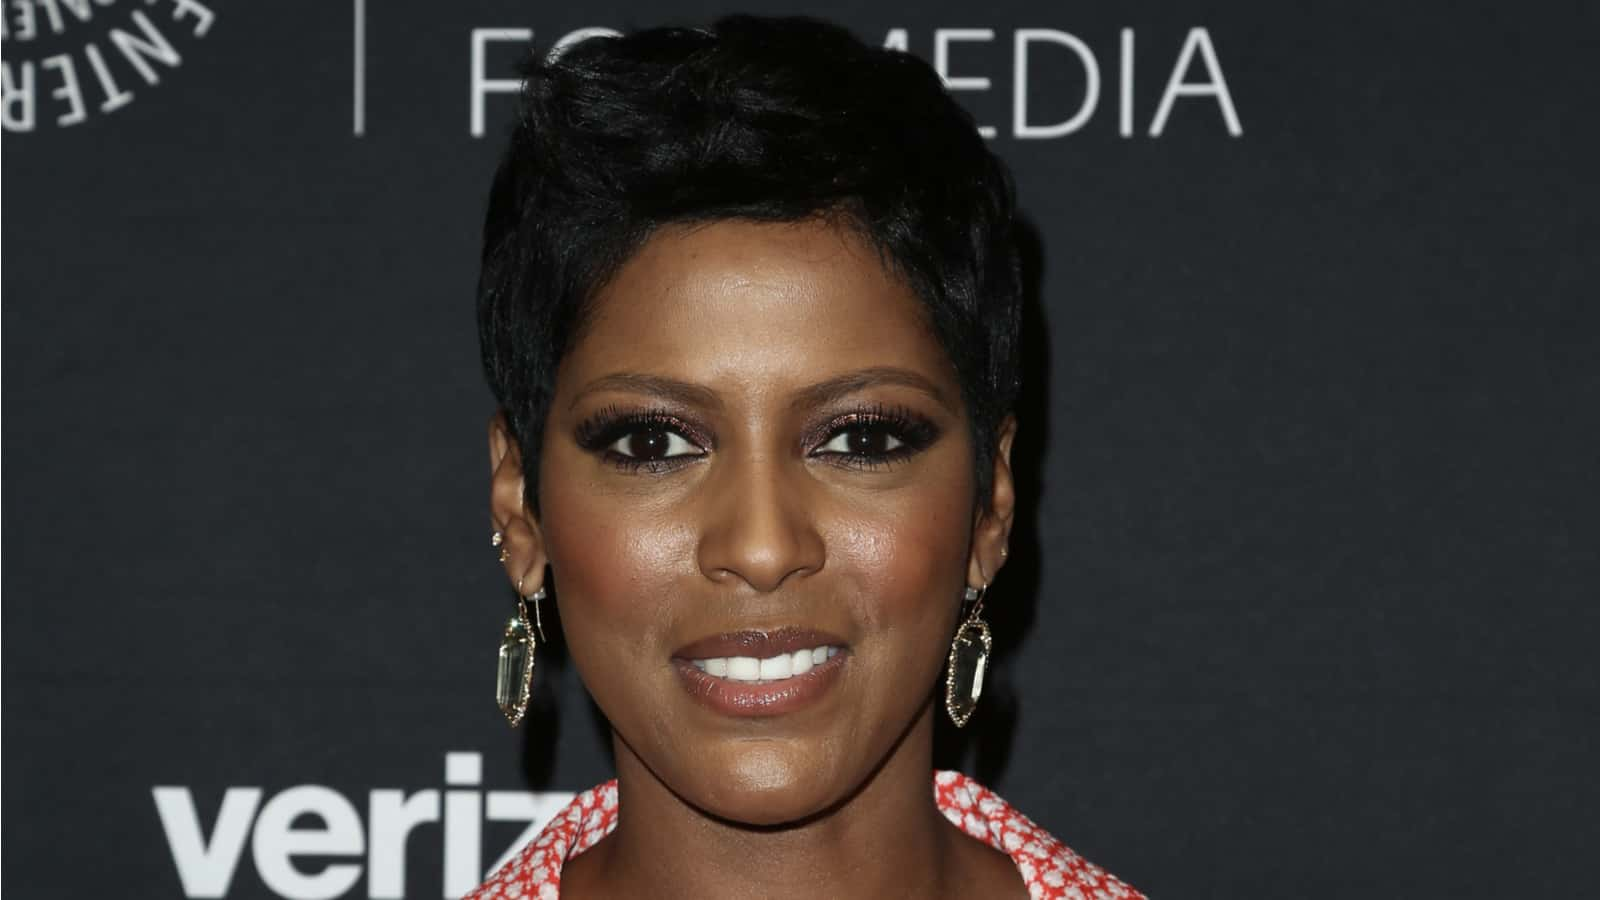 Tamron Hall Shares Teaser, 'Exciting News' About Upcoming Show